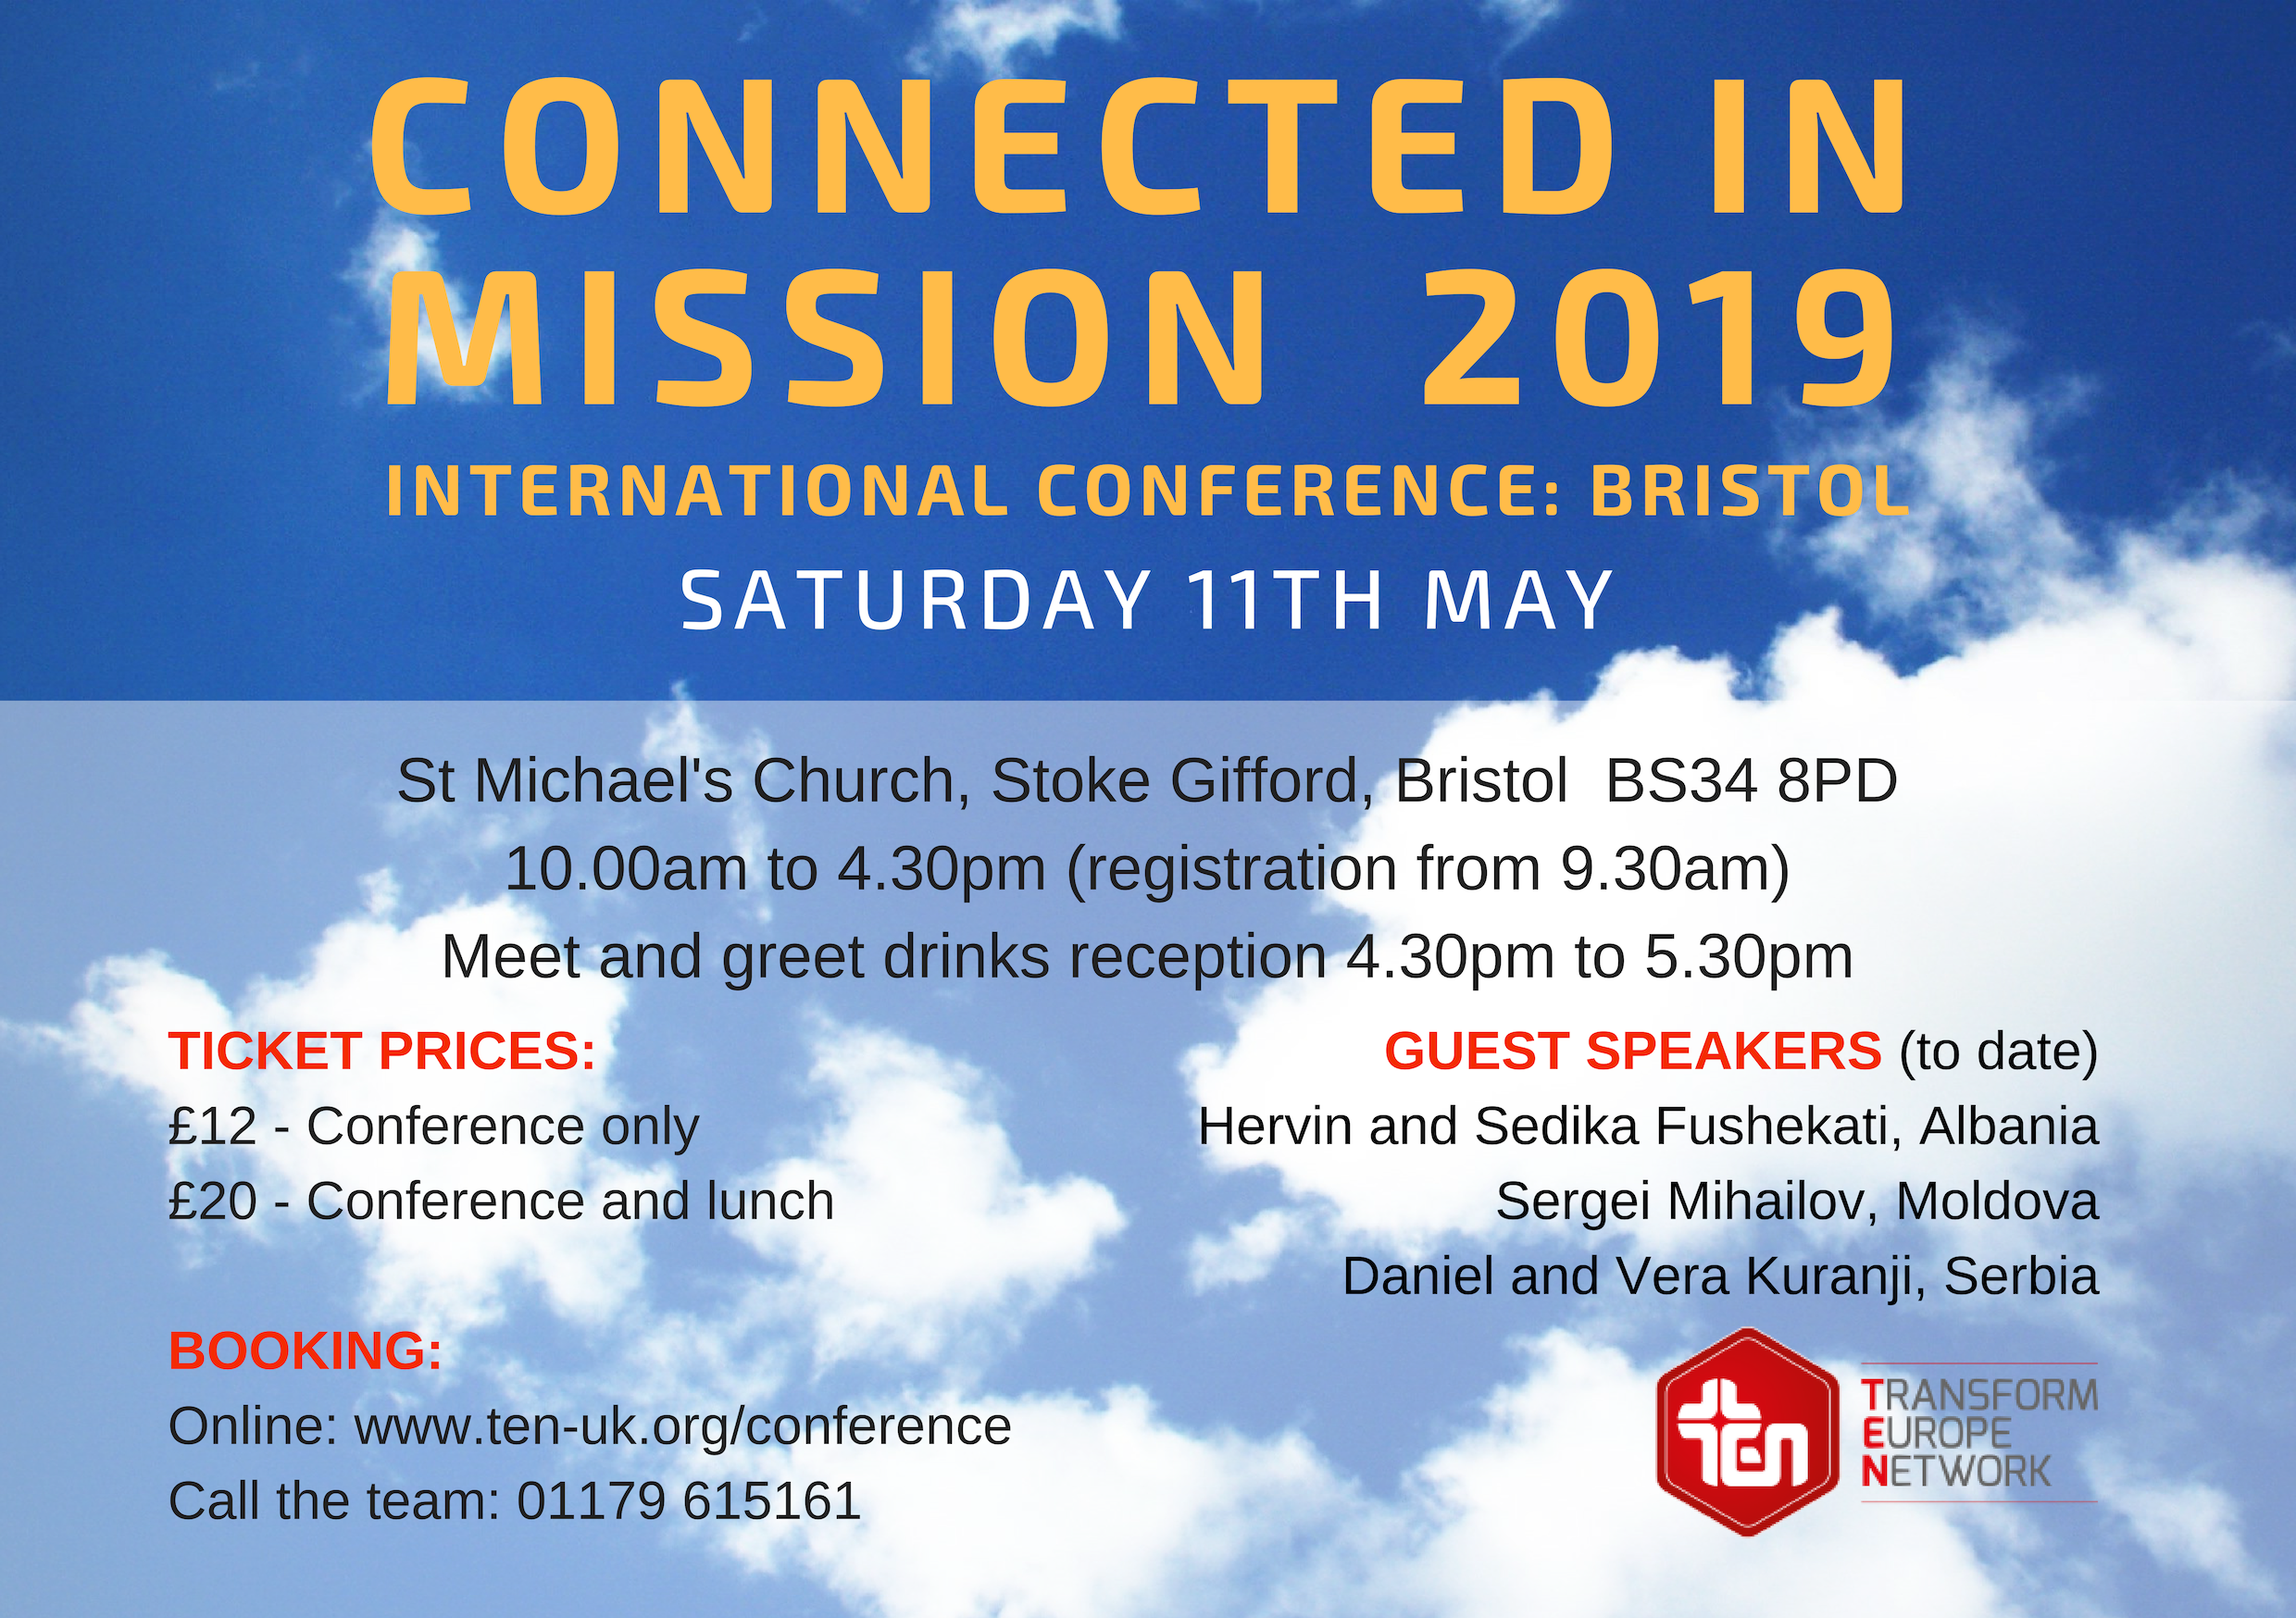 Connected in Mission 2019